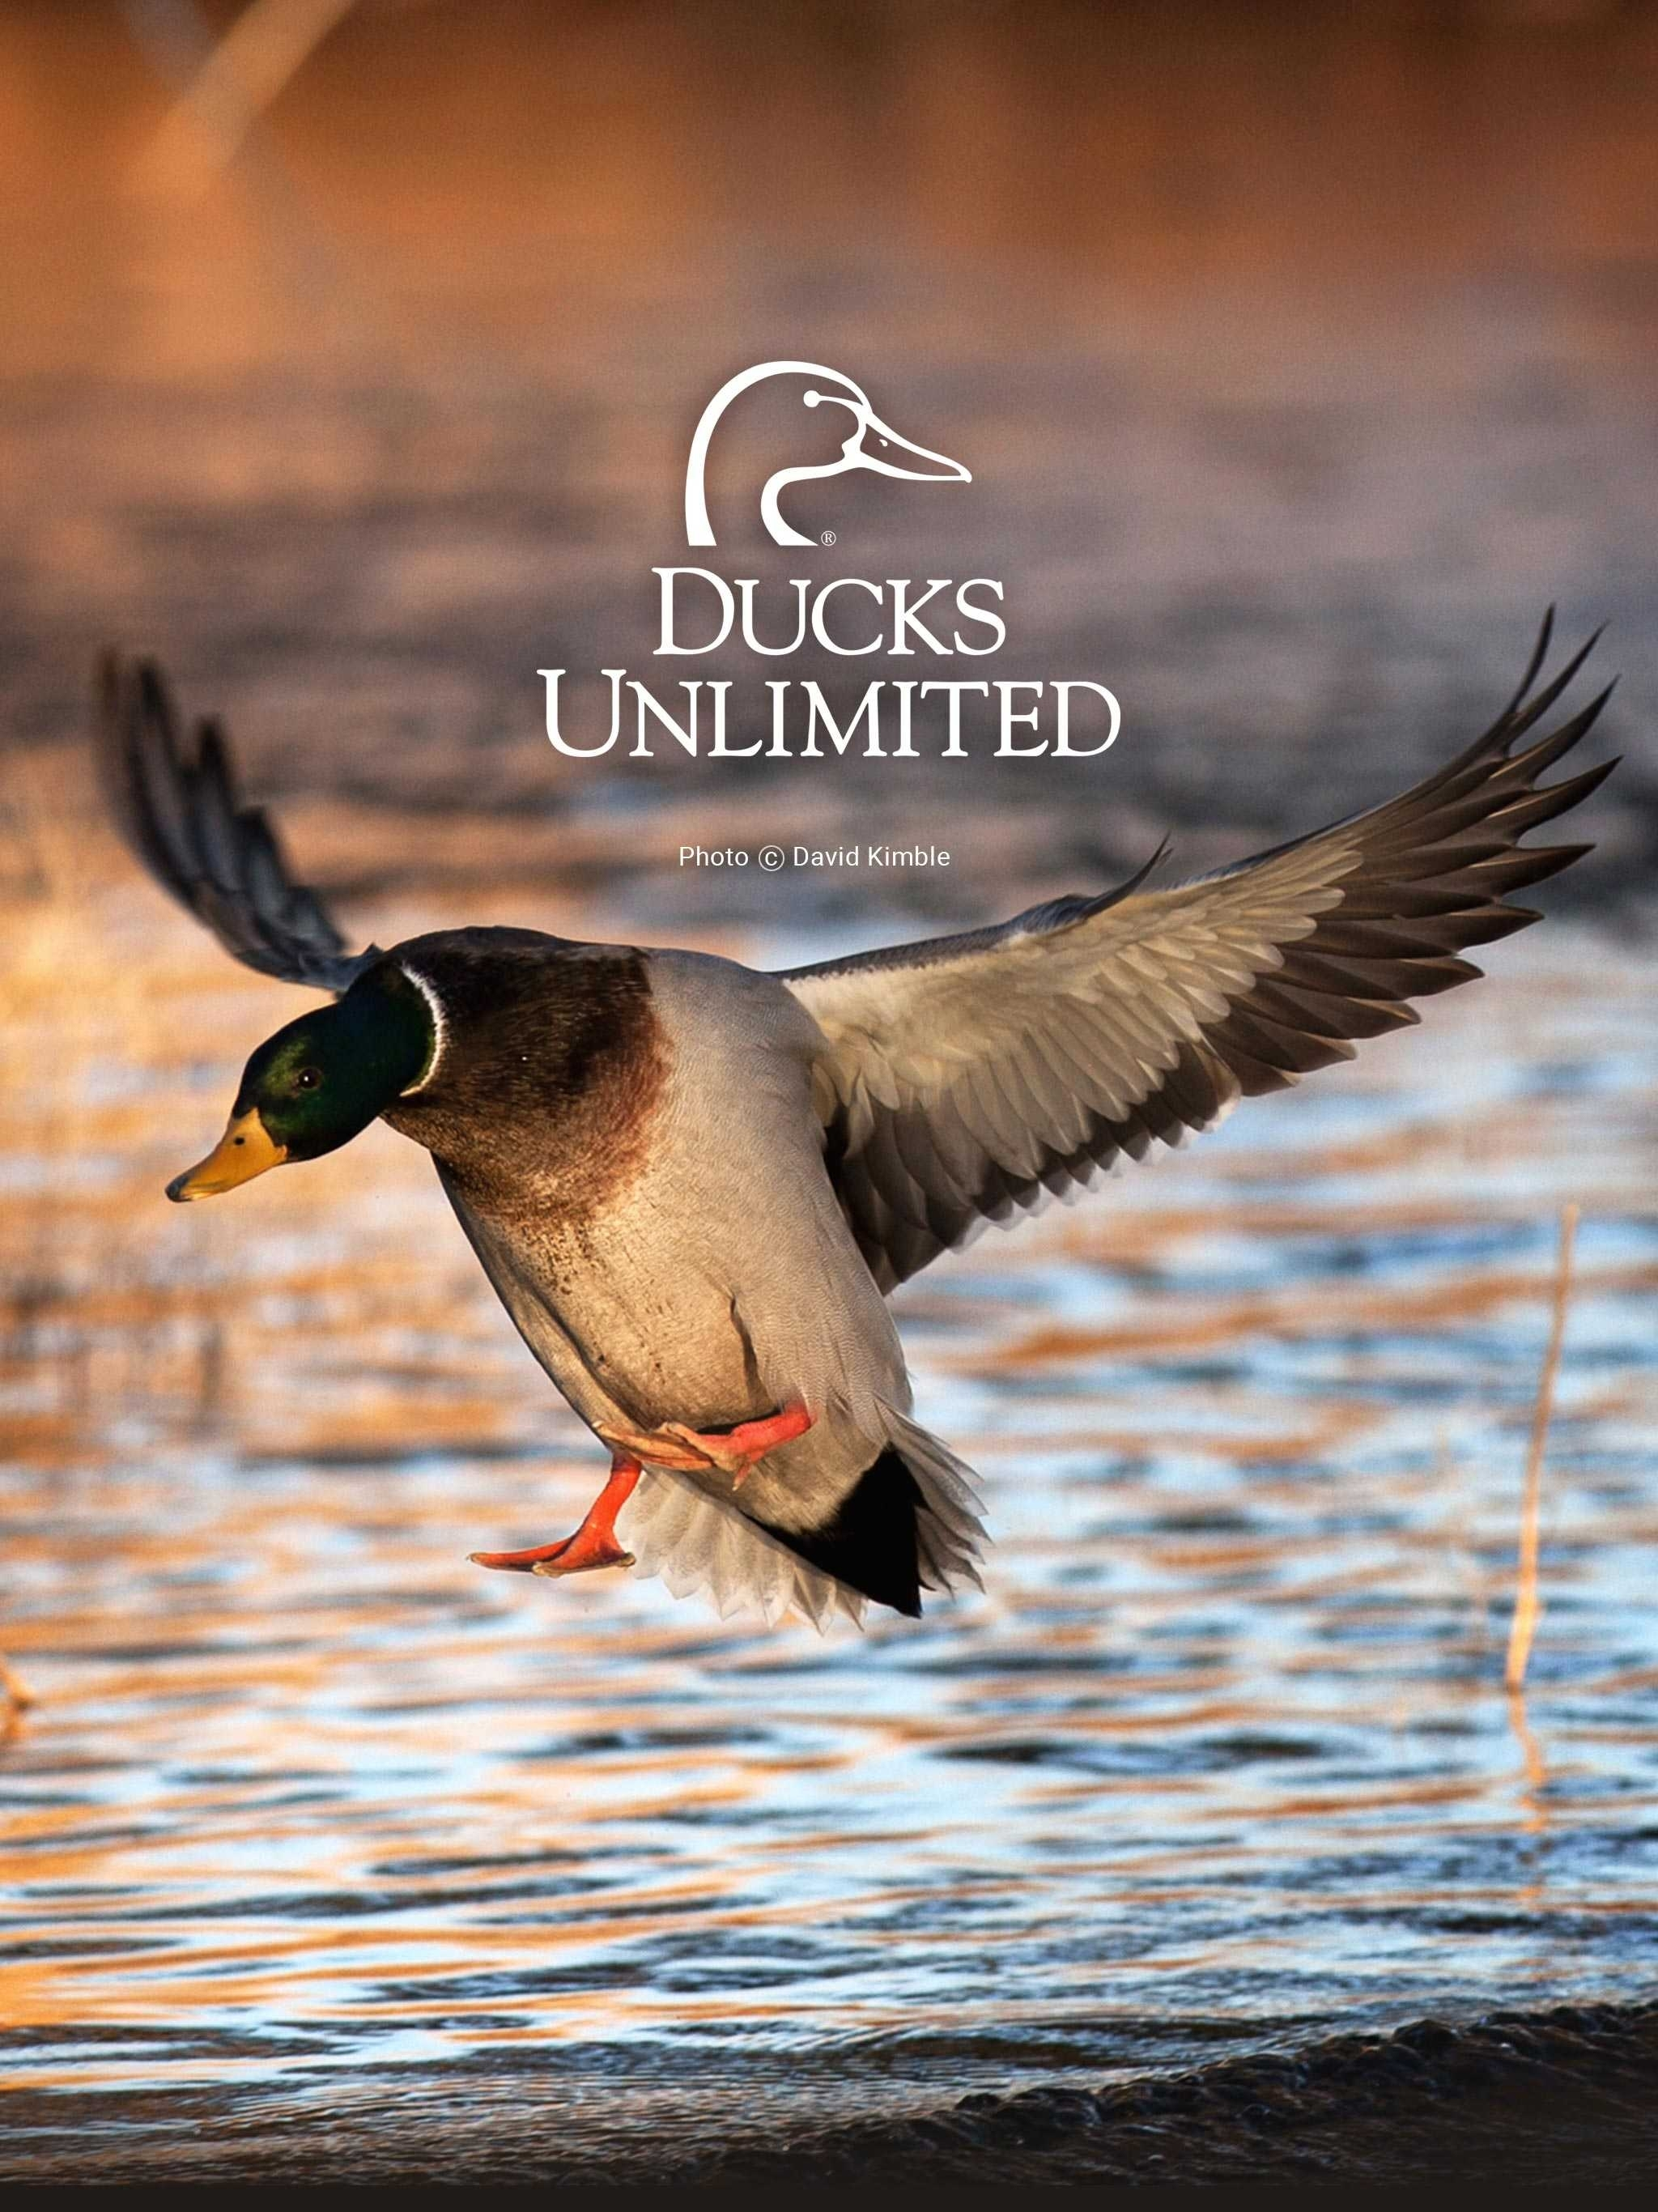 unlimited mobile backgrounds duck hunting wallpaper for phones hd